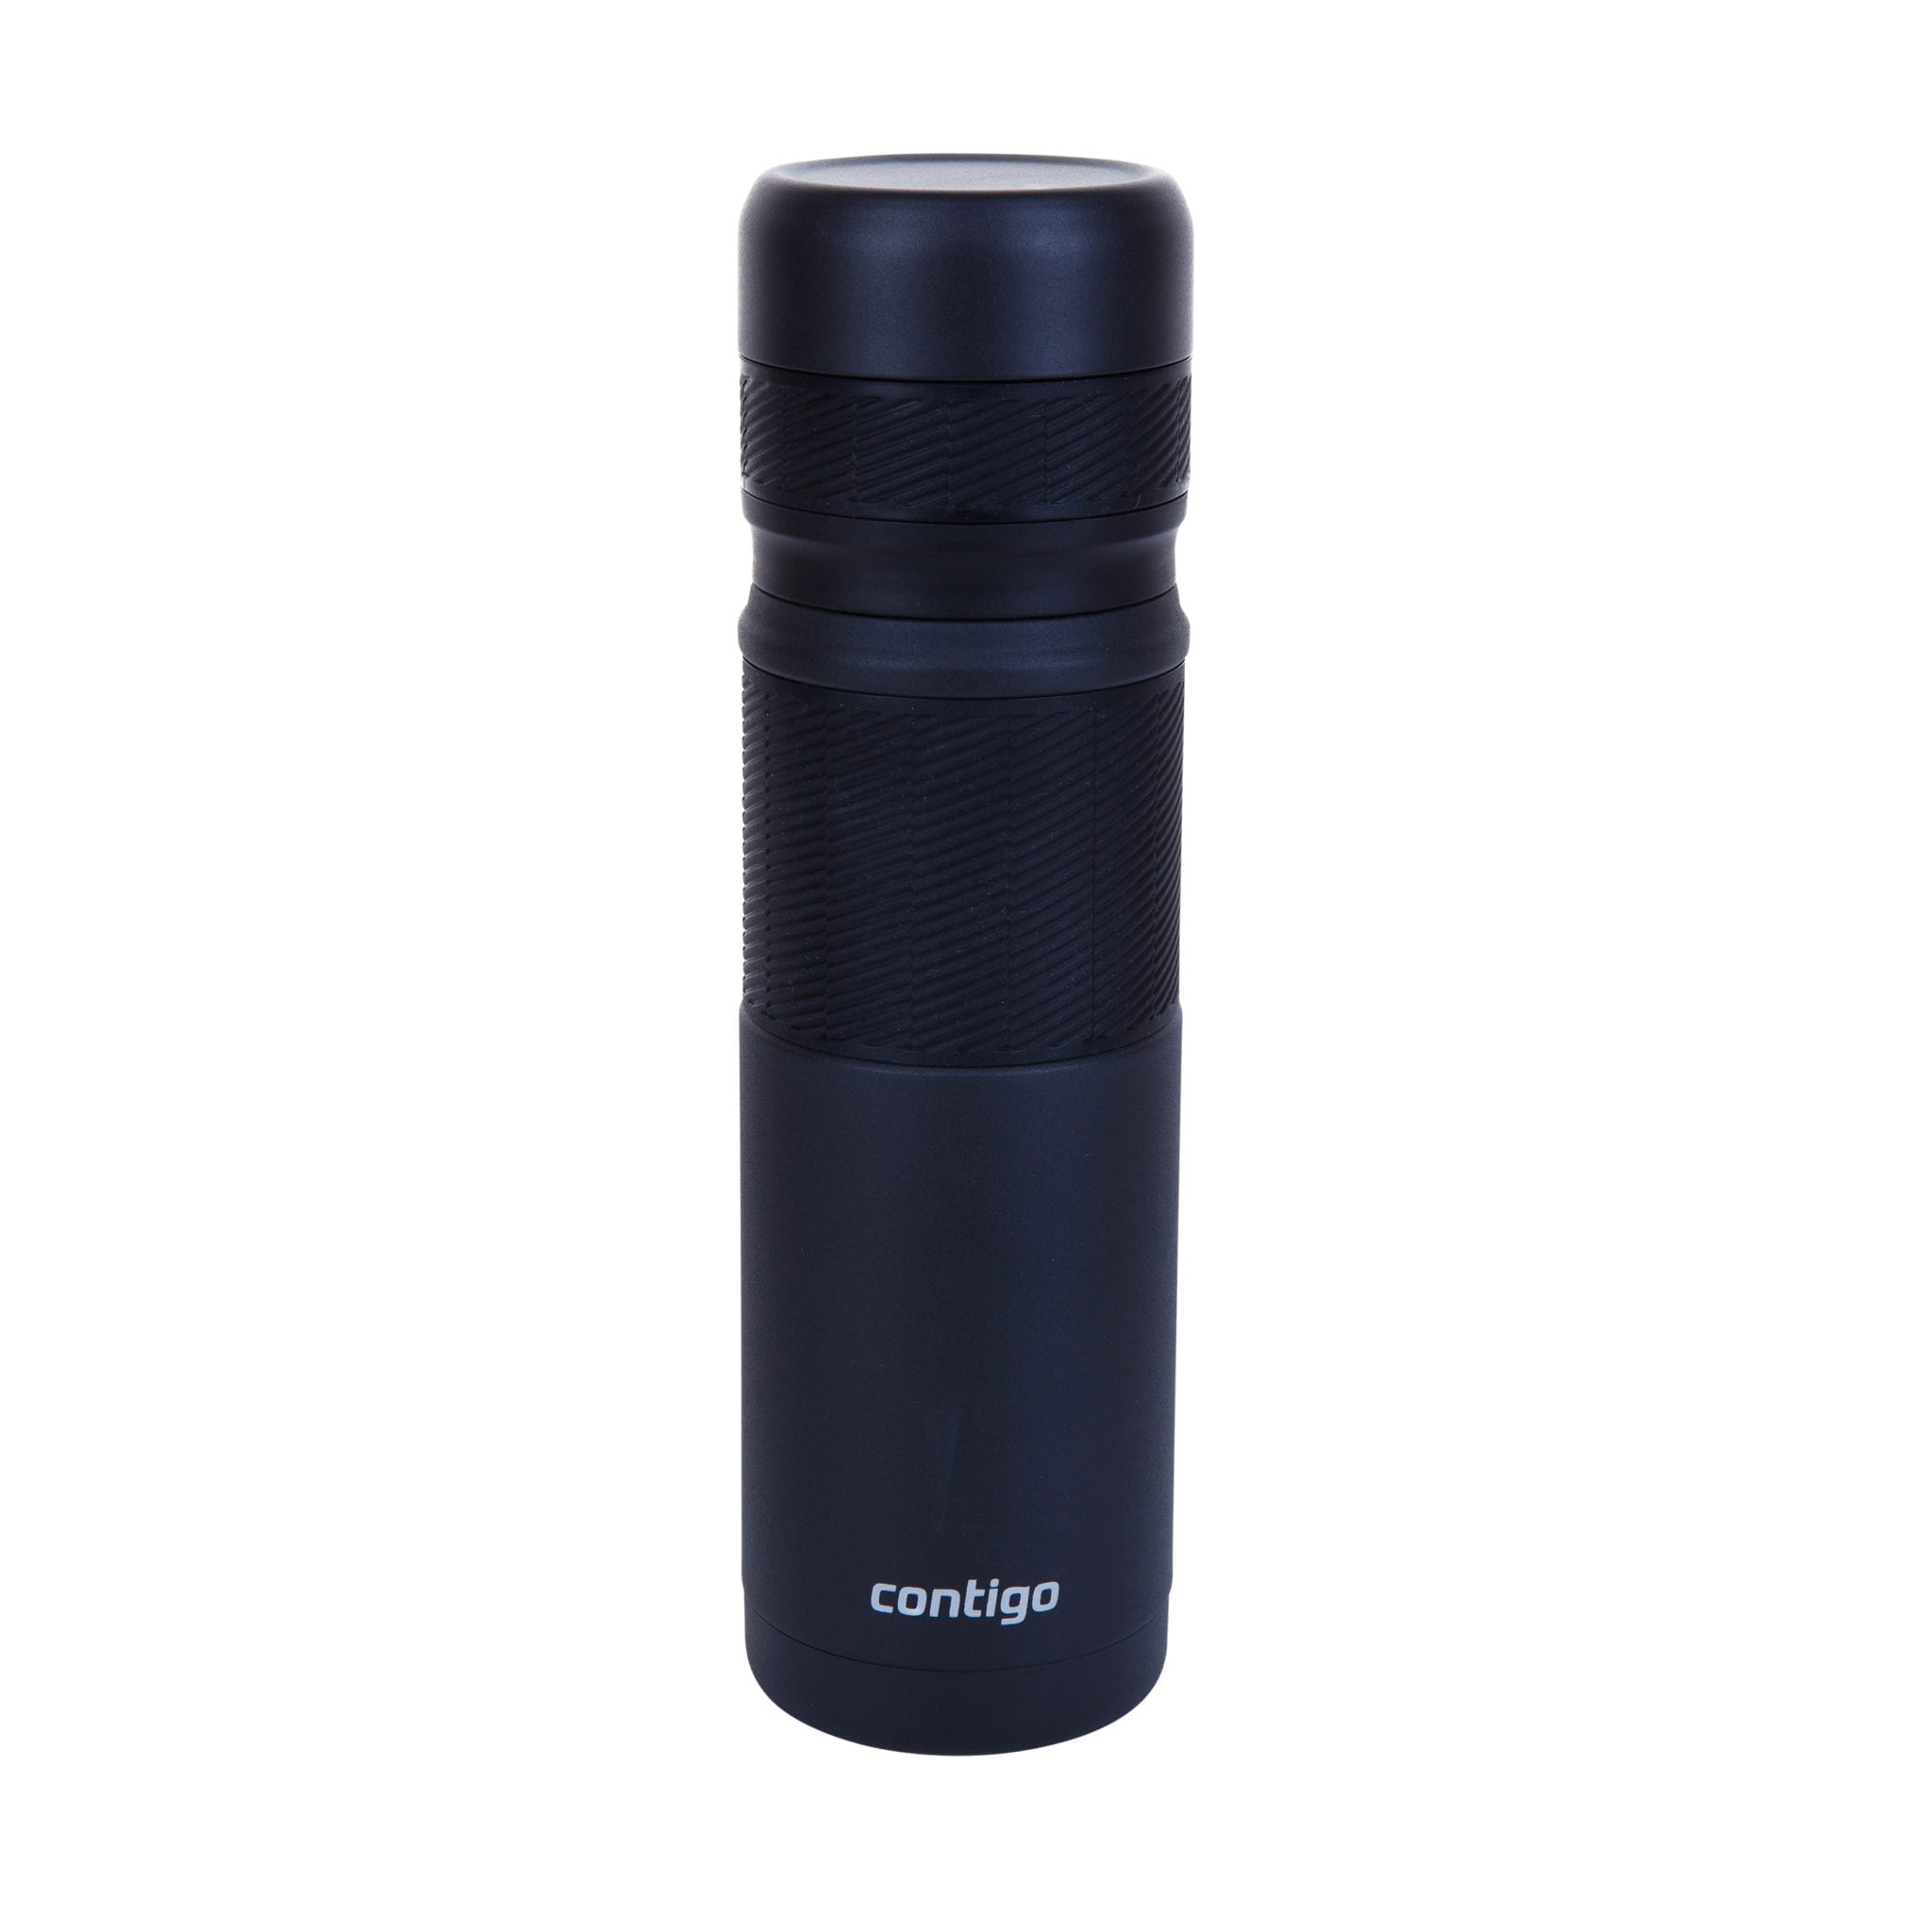 Contigo 740ml Thermal Bottle Front View in lid on